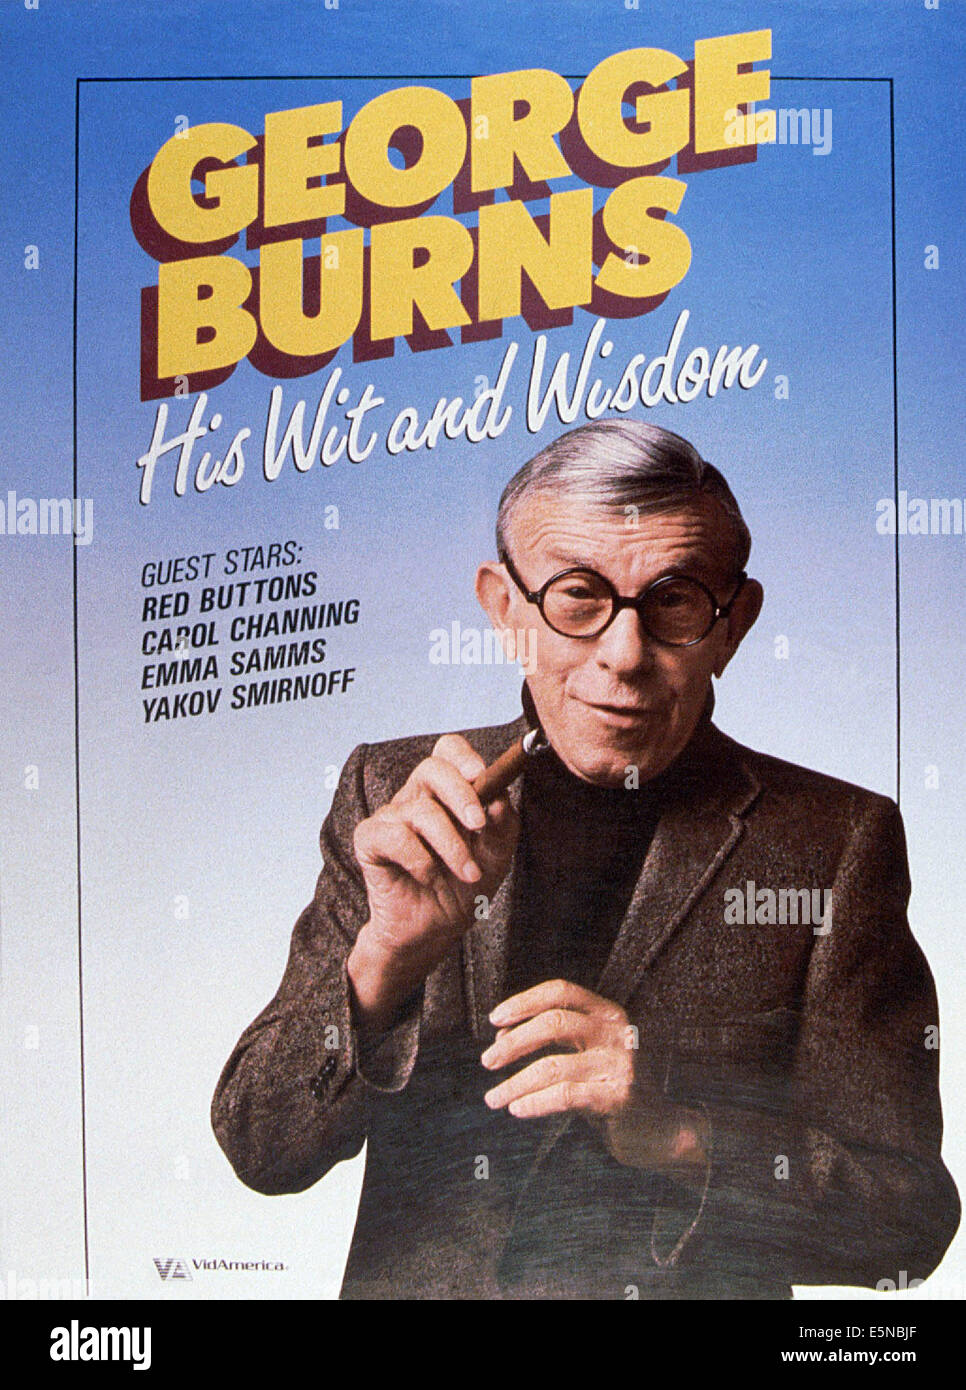 GEORGE BURNS - son esprit et sagesse, 1989 Photo Stock